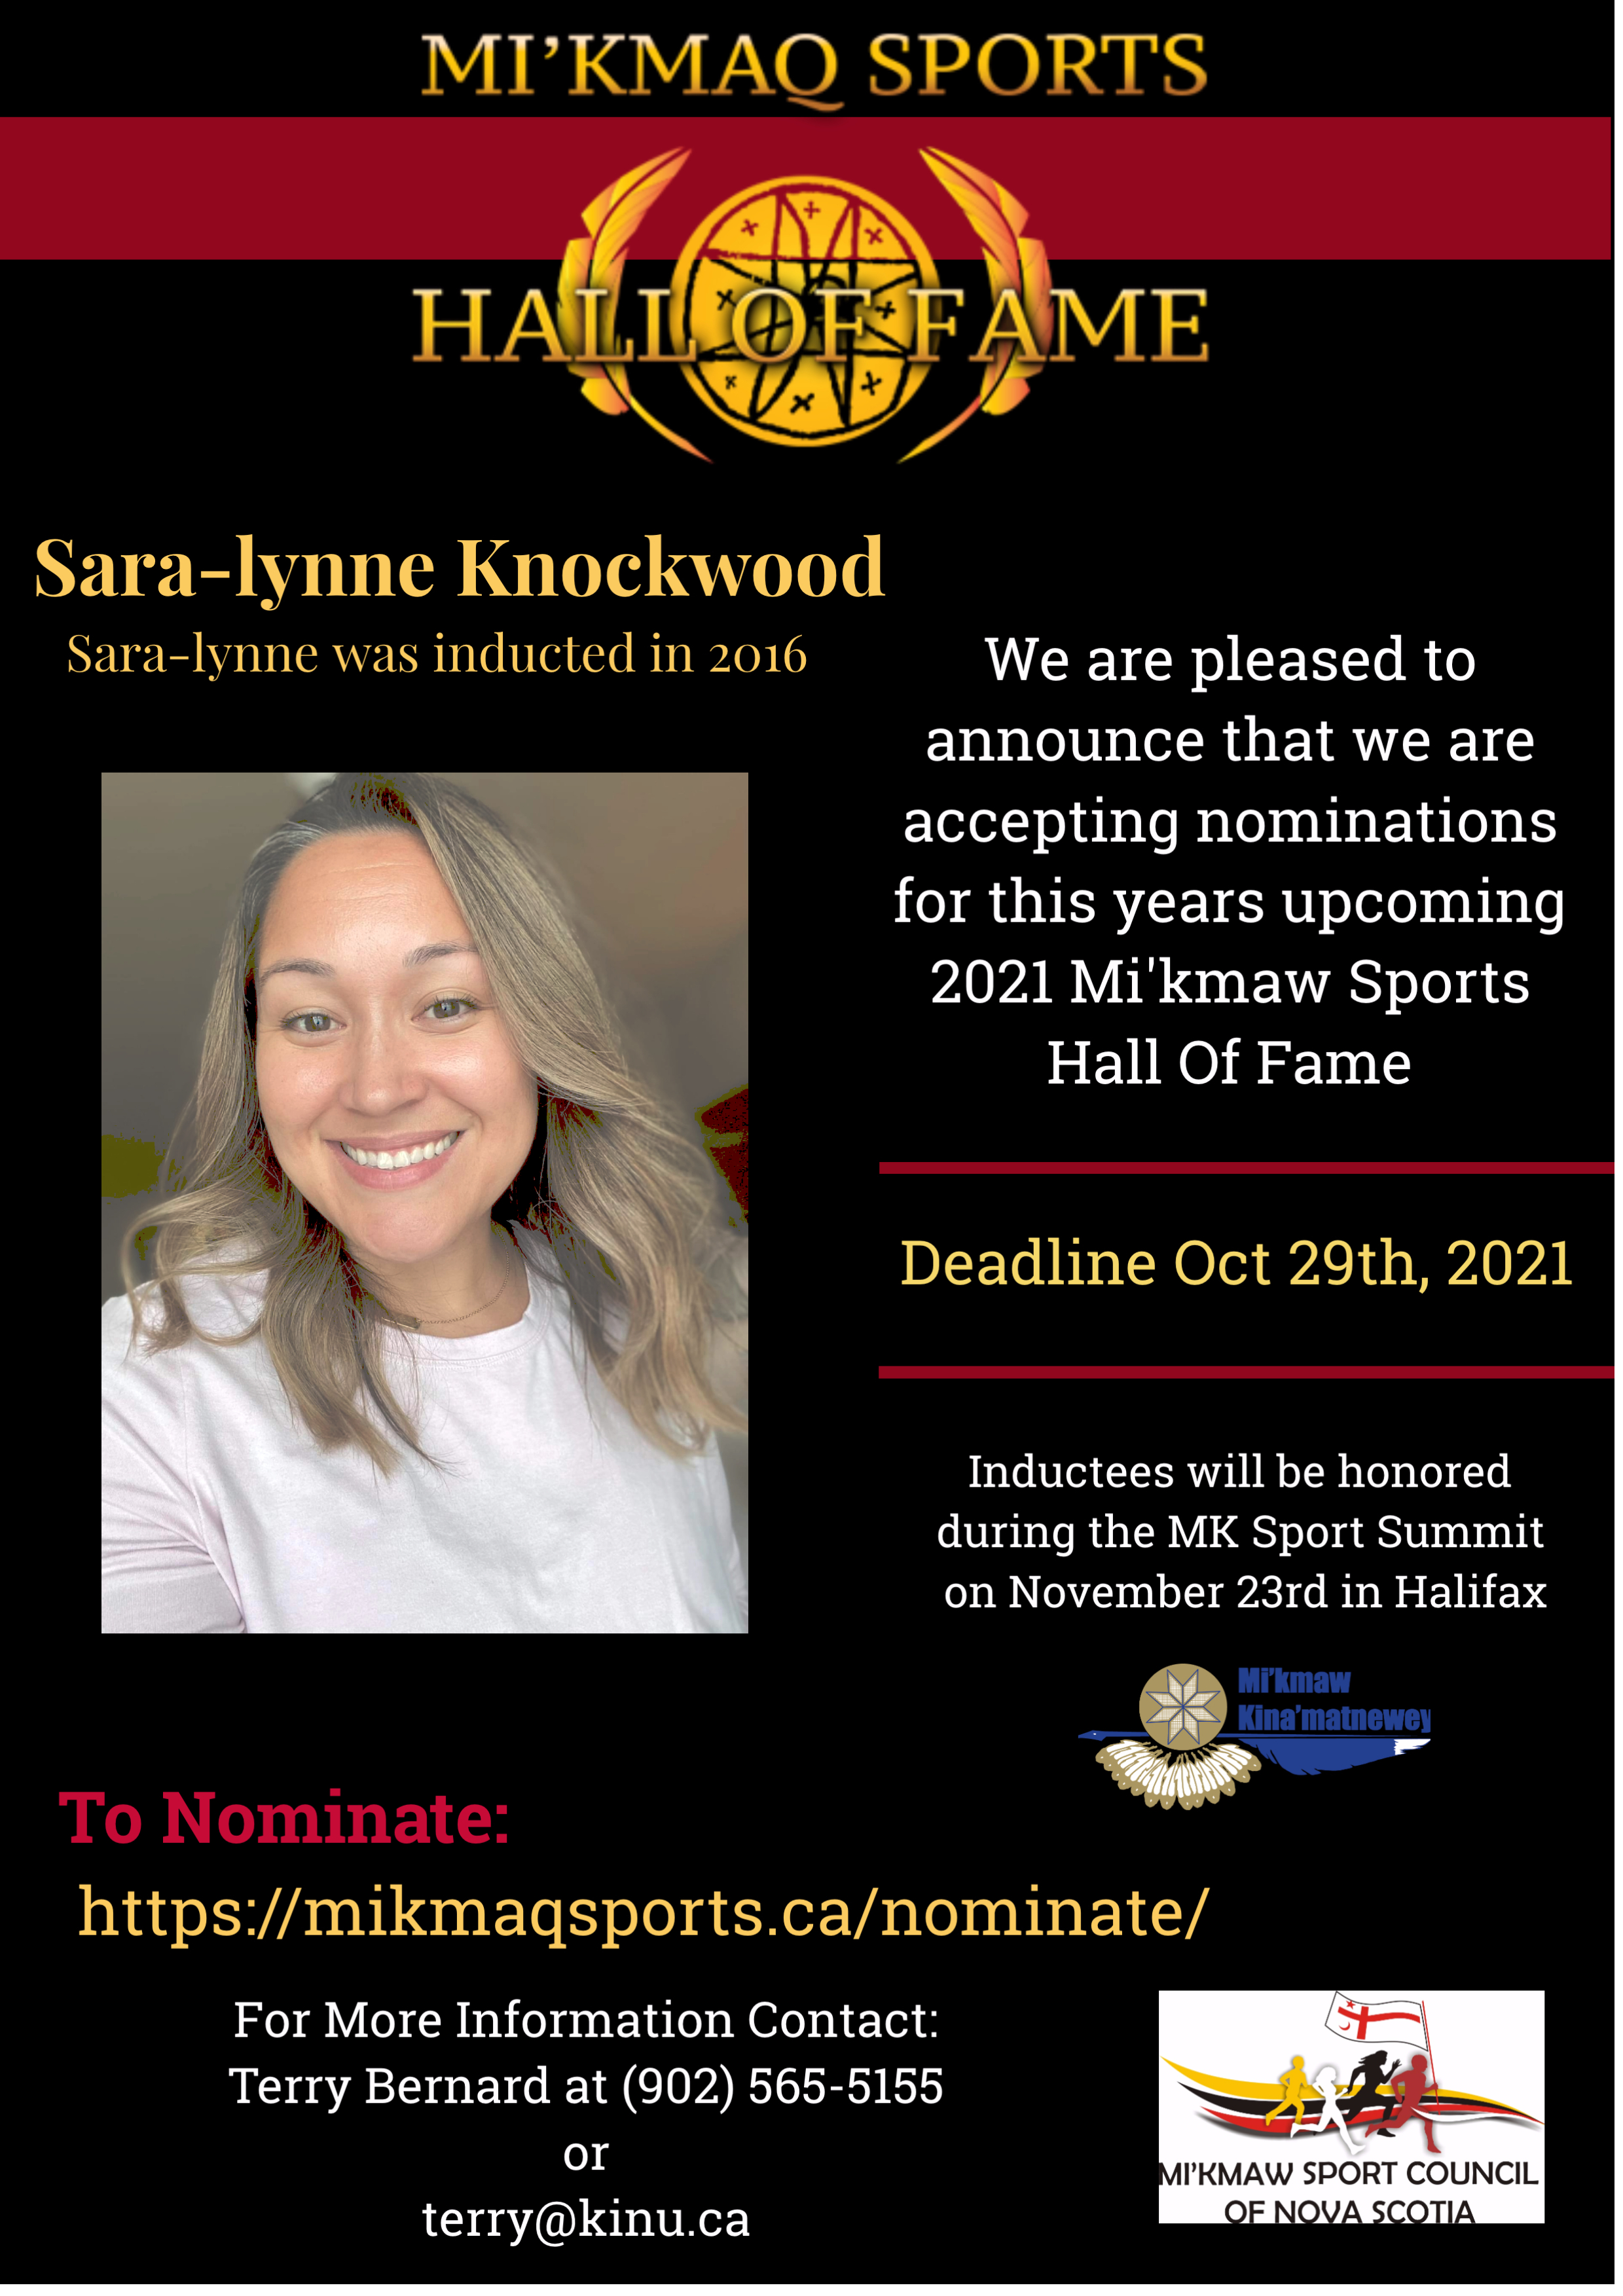 Nominations are now open for the Mi'kmaq Sports Hall of Fame